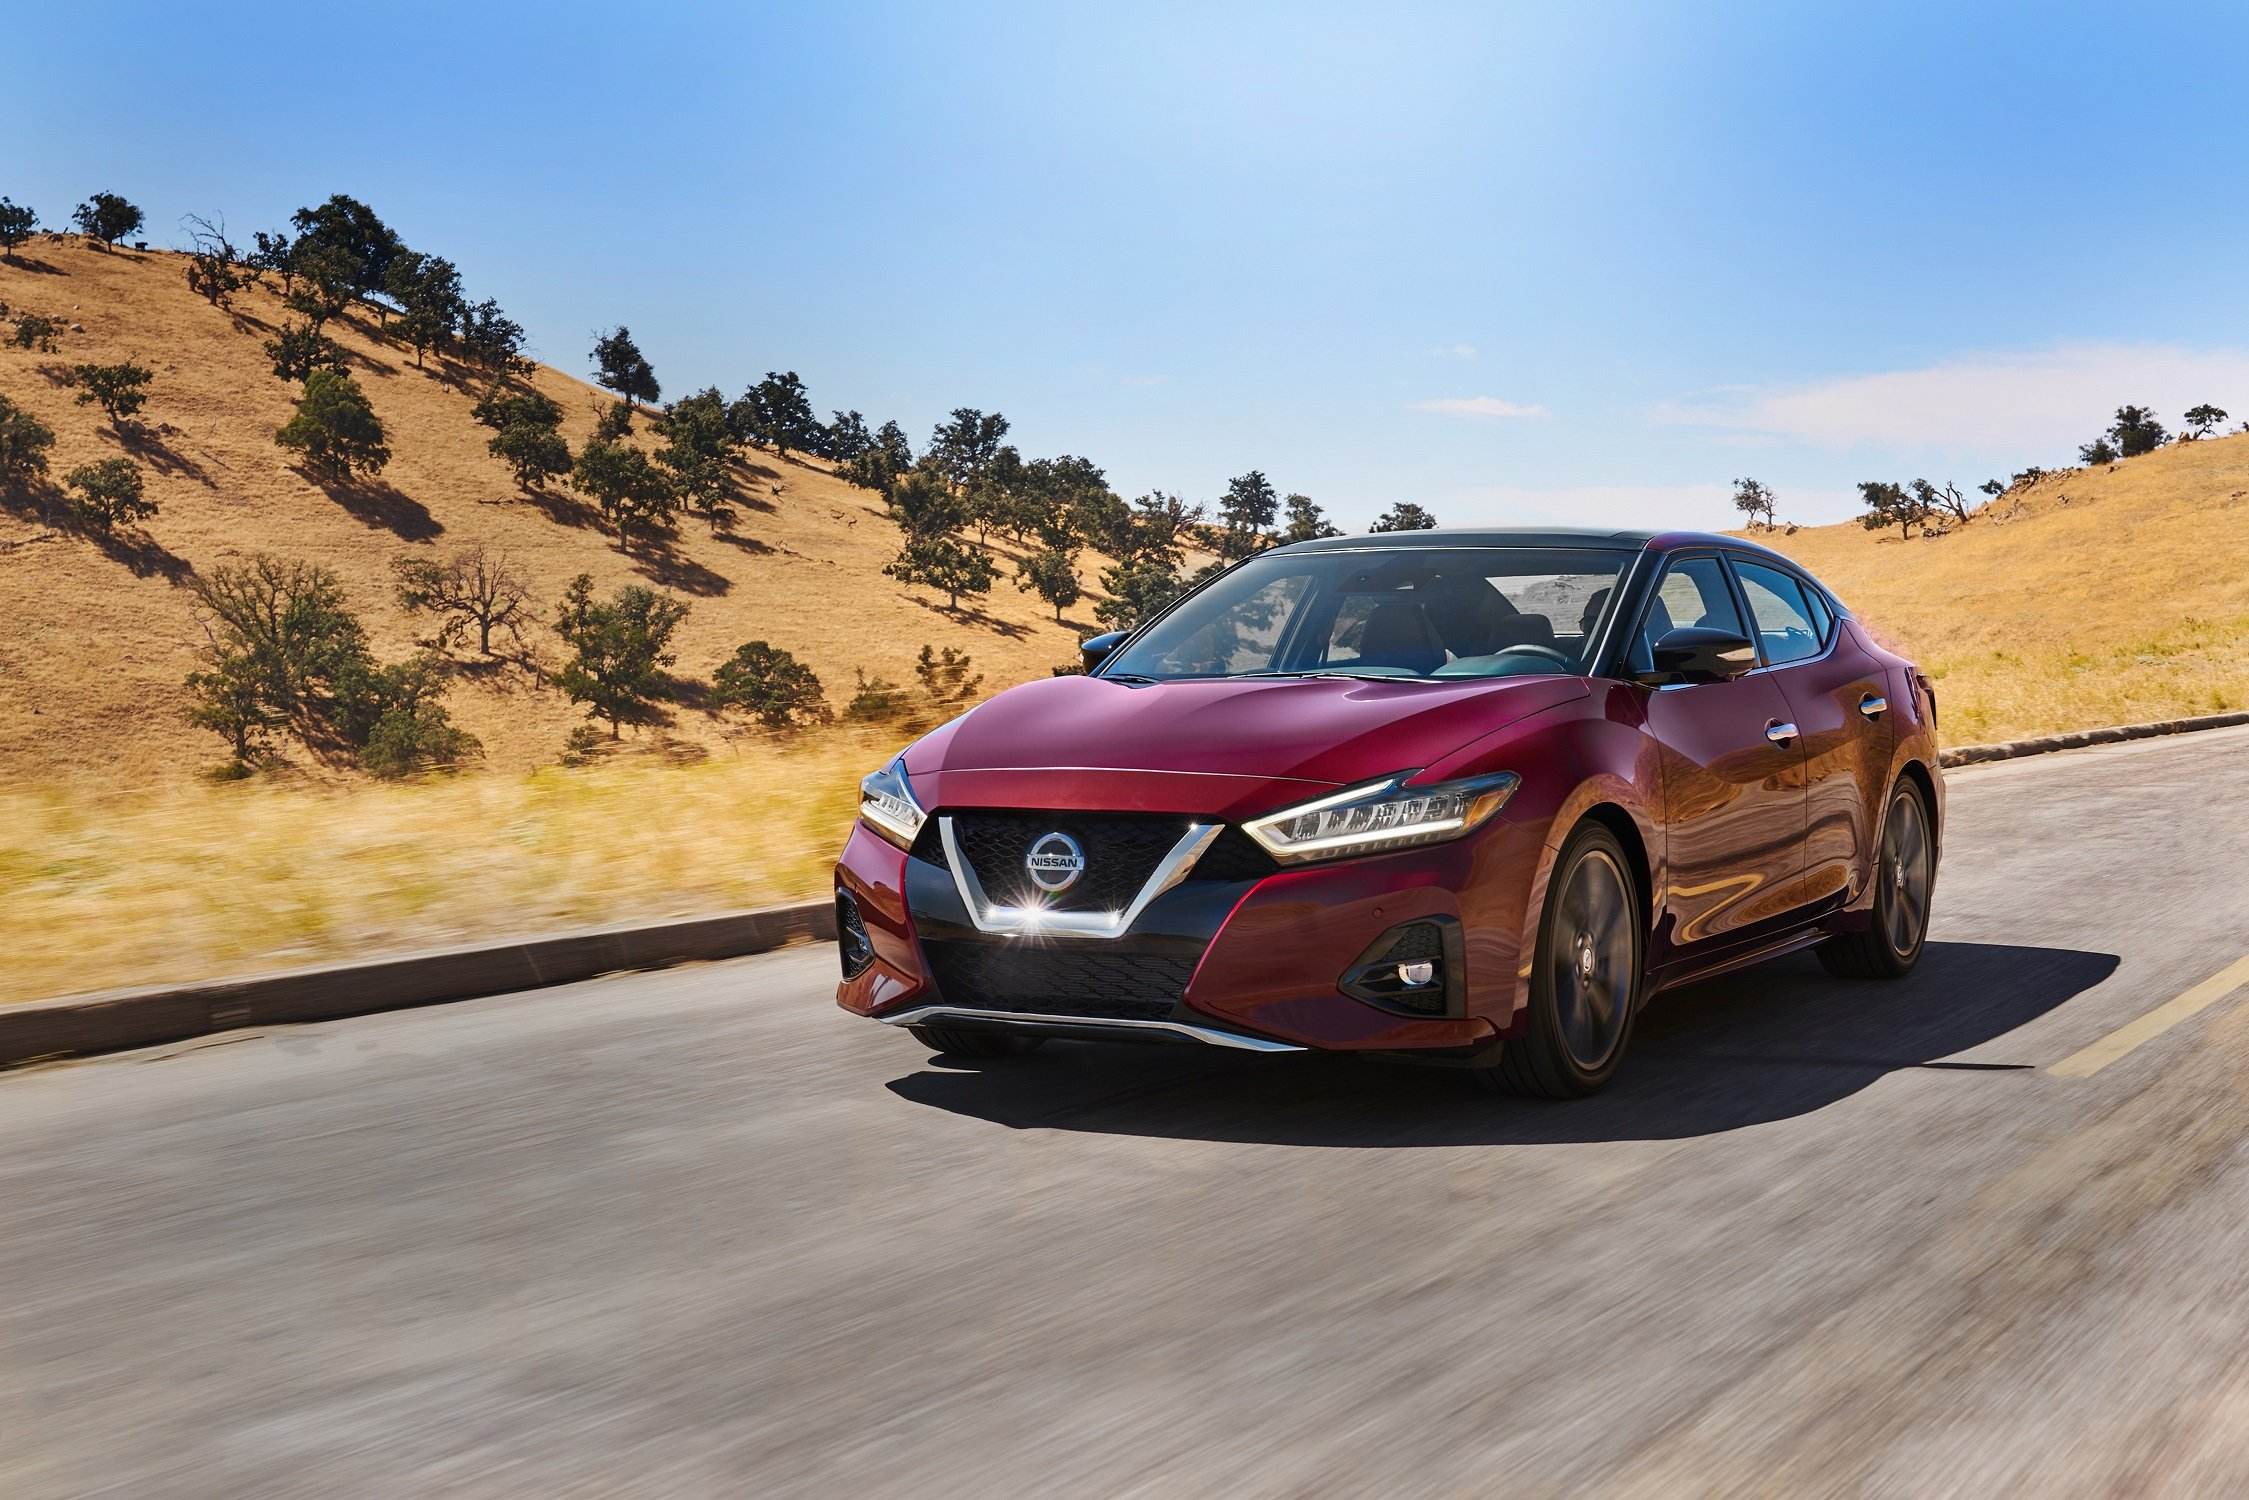 "The 2020 Nissan Maxima wins ""Middle East Car of the Year"" Award 2020 within the large Sedan segment category as a premium sports sedan"